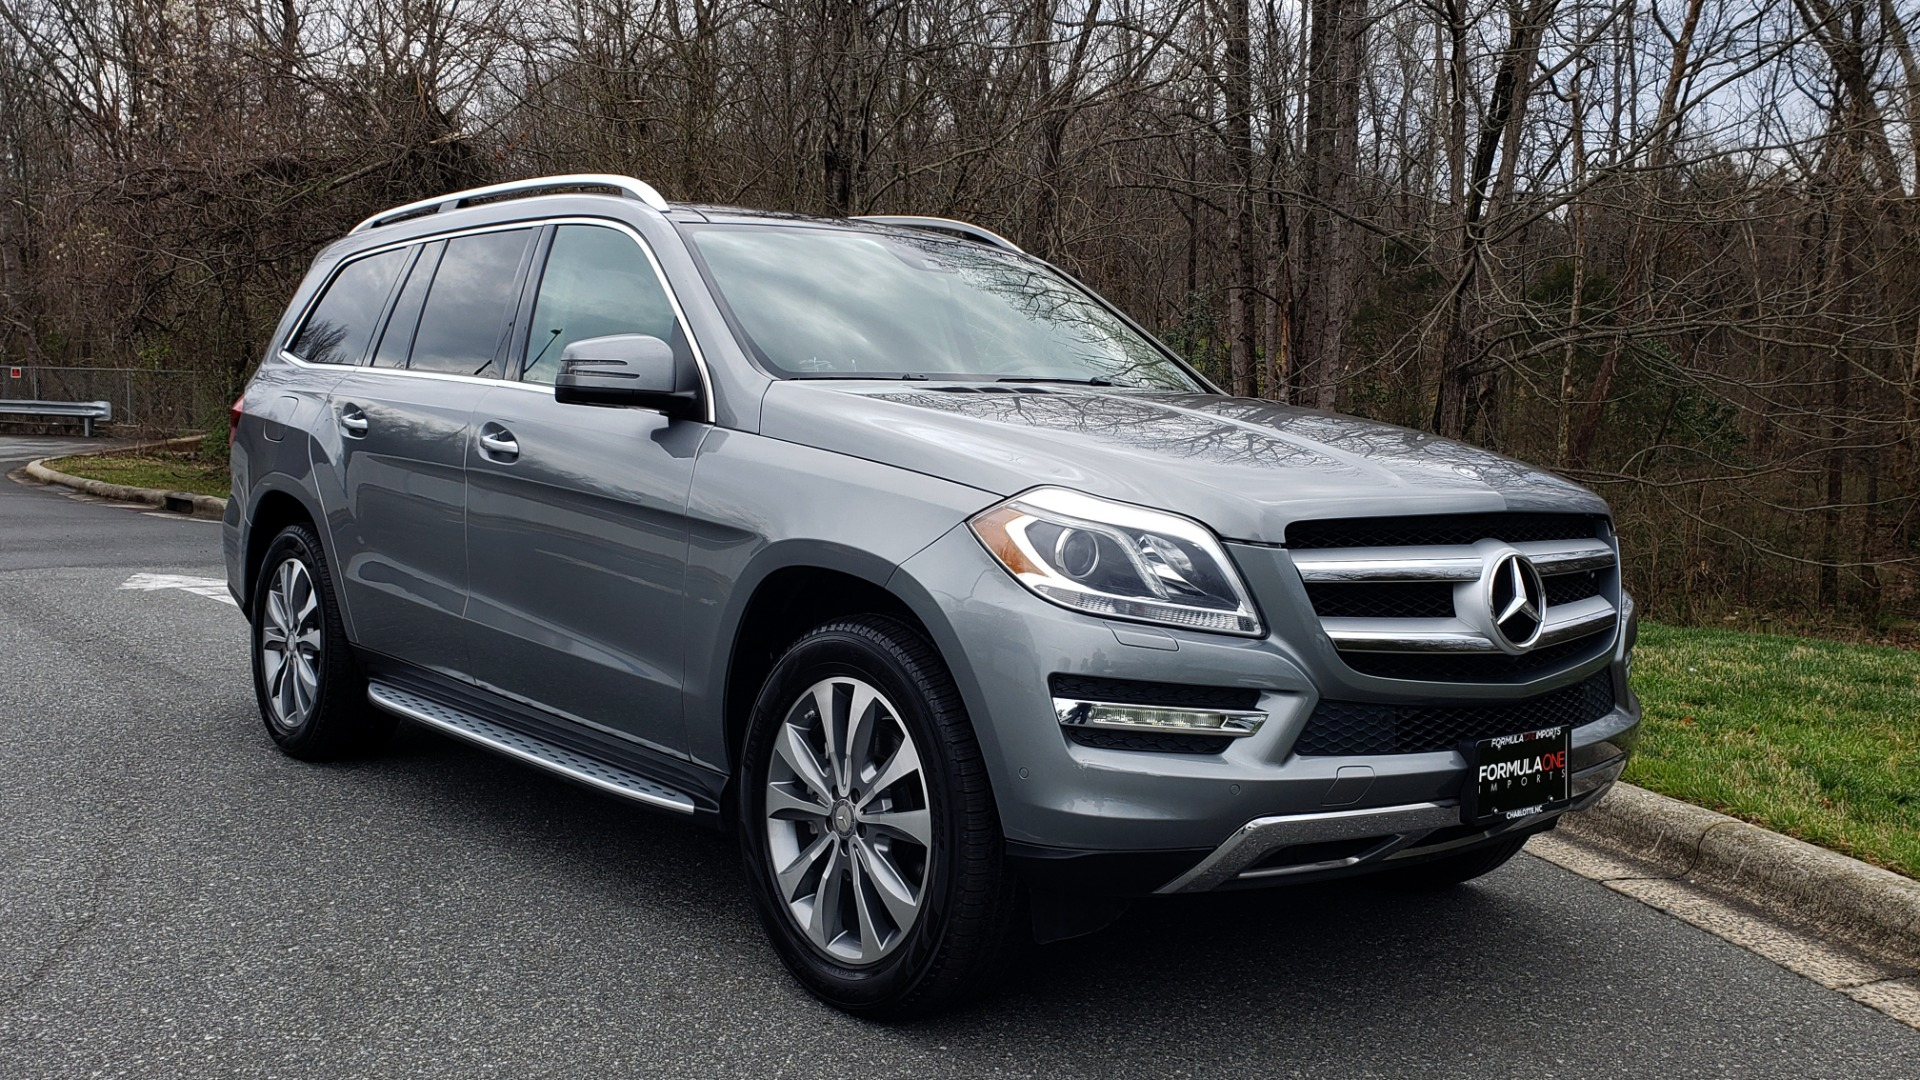 Used 2014 Mercedes-Benz GL-Class GL 450 4MATIC PREMIUM / NAV / PANO-ROOF / HK SND / 3-ROW for sale Sold at Formula Imports in Charlotte NC 28227 4